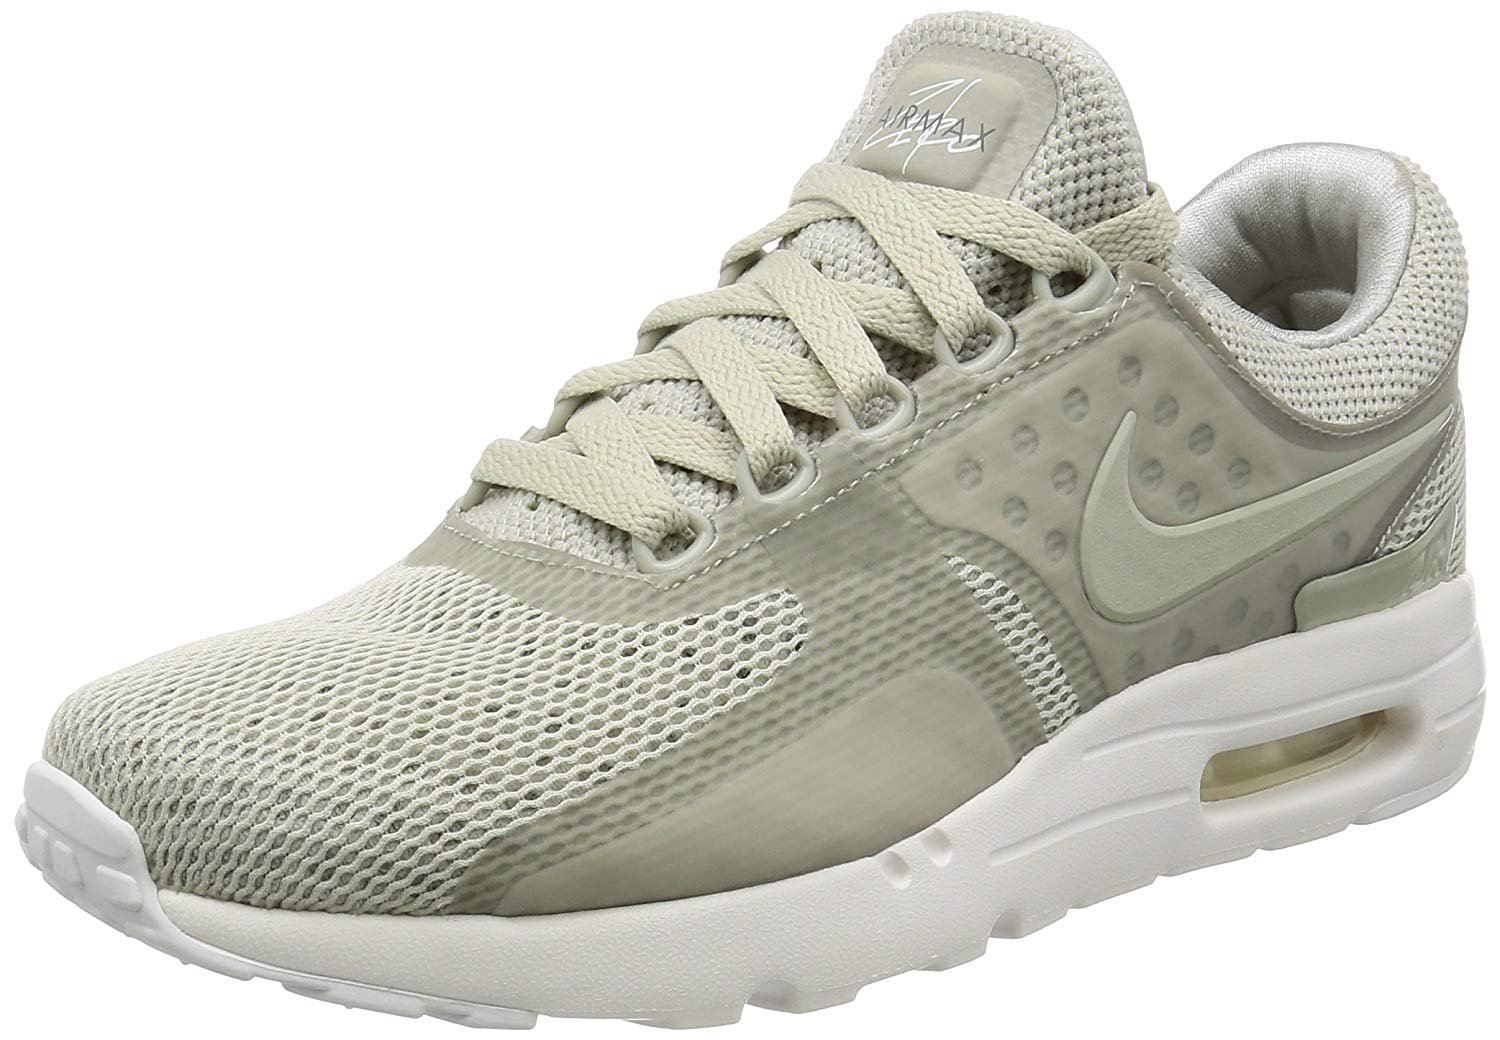 5c3a90c647 Galleon - NIKE Air Max Zero Essential Mens Running Shoes (14 D(M) US, Pale  Grey/Pale Grey-Summit White)